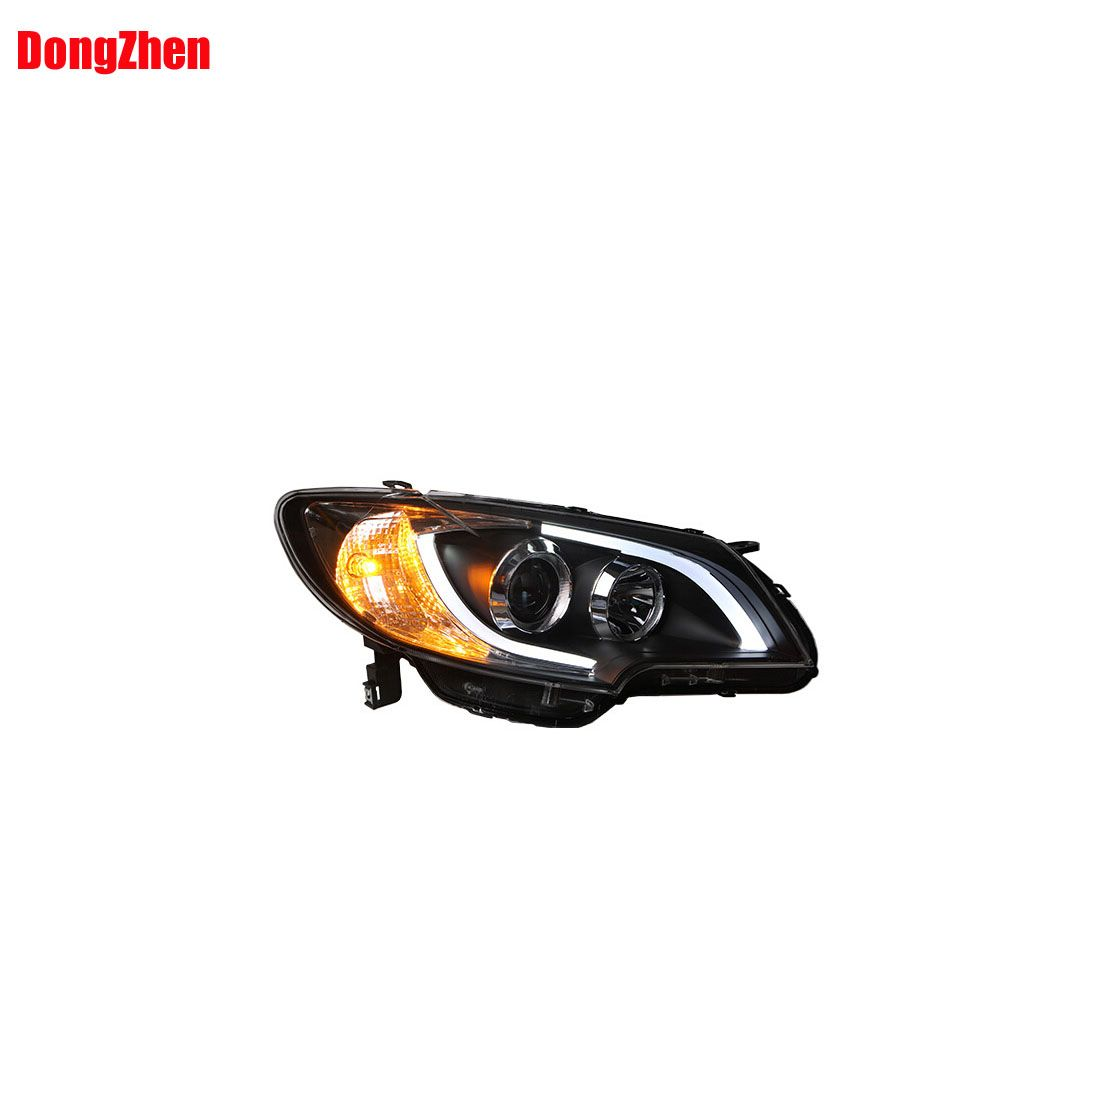 $436.66 (Buy here: http://appdeal.ru/dlk5 ) Dong Zhen LED Headlight Angel Eyes 2013 to 2015 car styling Fit For TOYOTA corolla ex 1set for just $436.66